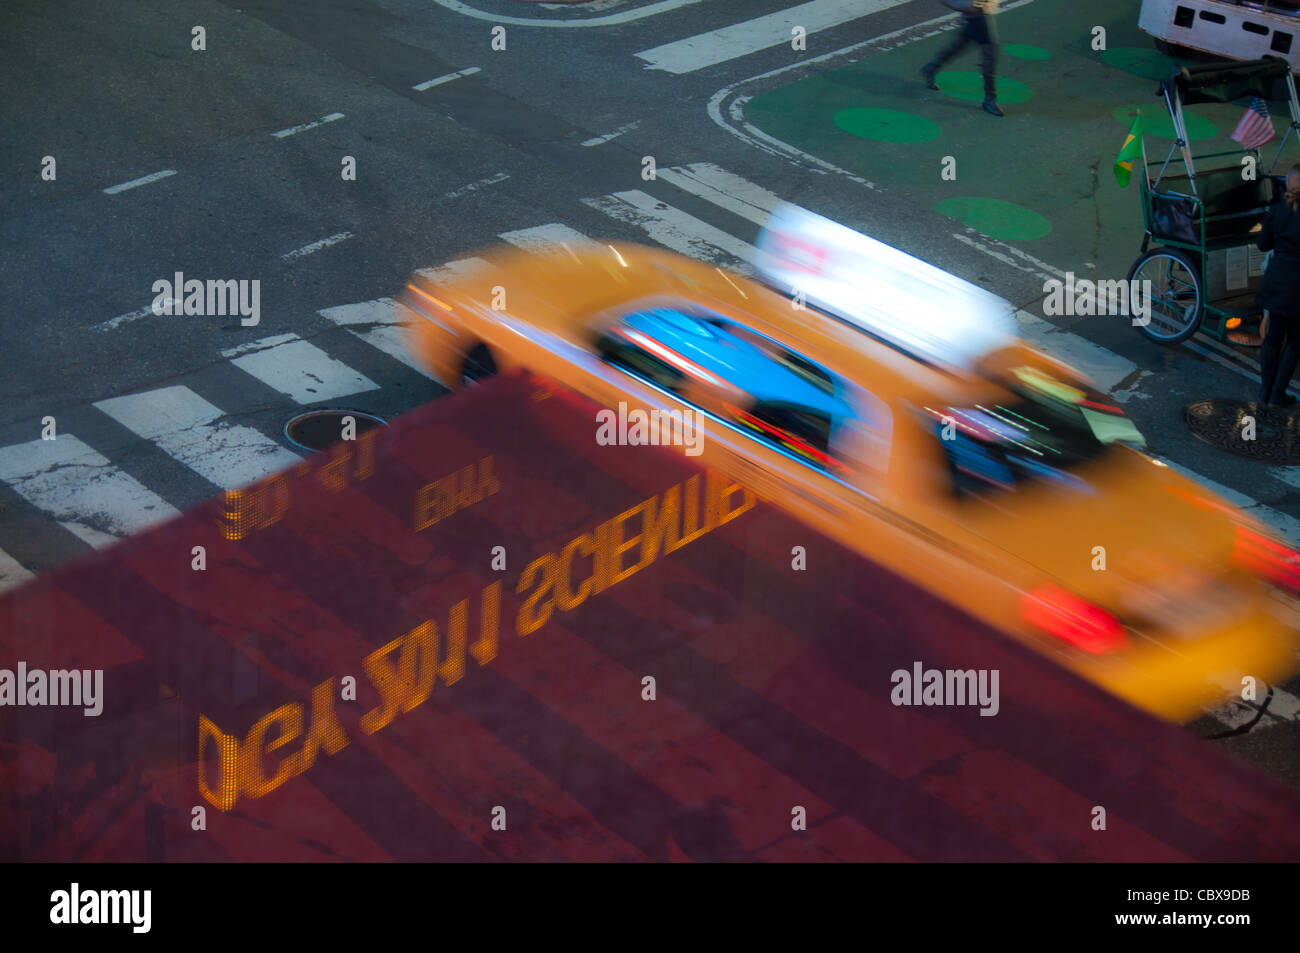 Blurred taxi in motion and stock info reflection on Times Square, New York City Stock Photo